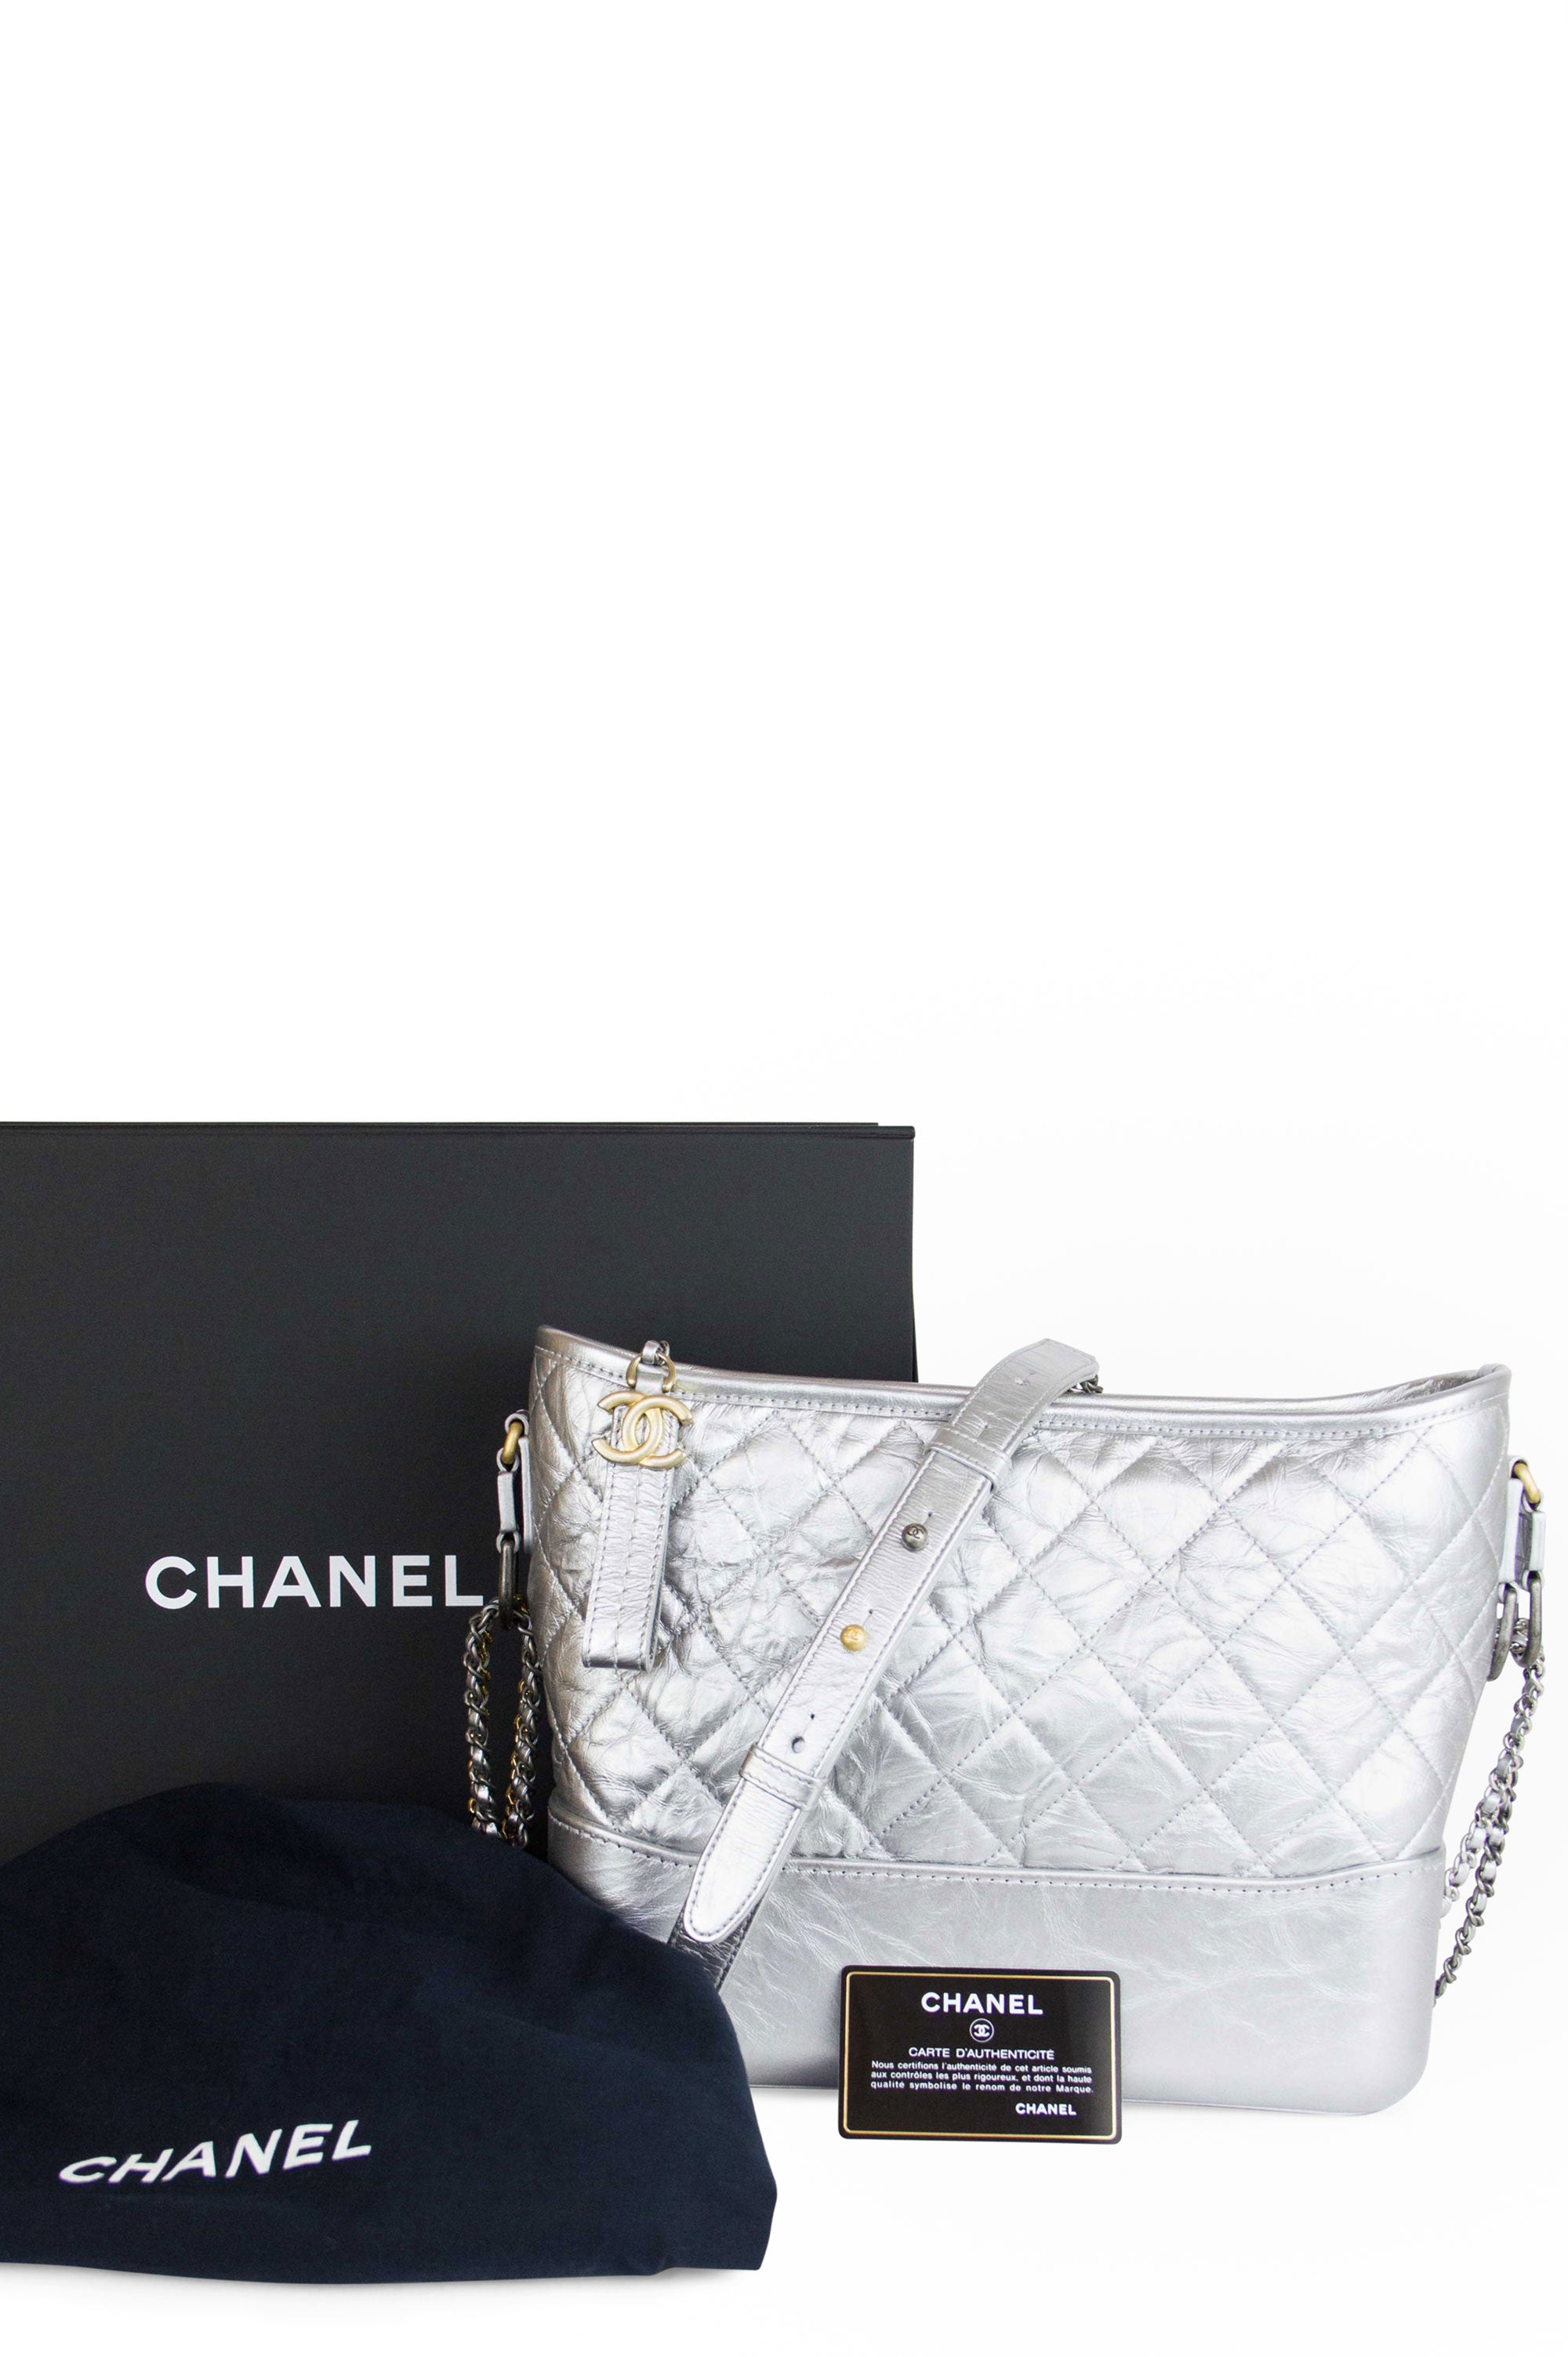 Chanel Hobo Gabrielle Bag Medium Frontalansicht Silber Full set